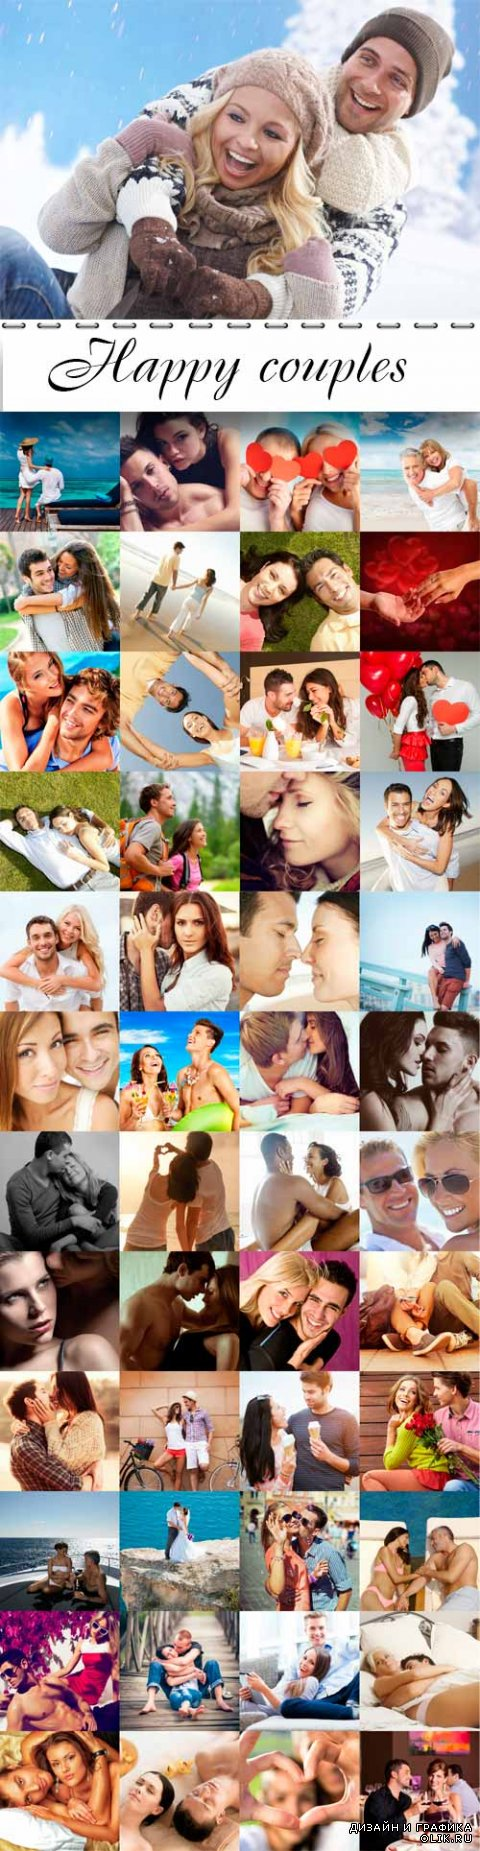 Happy couples raster graphics collection